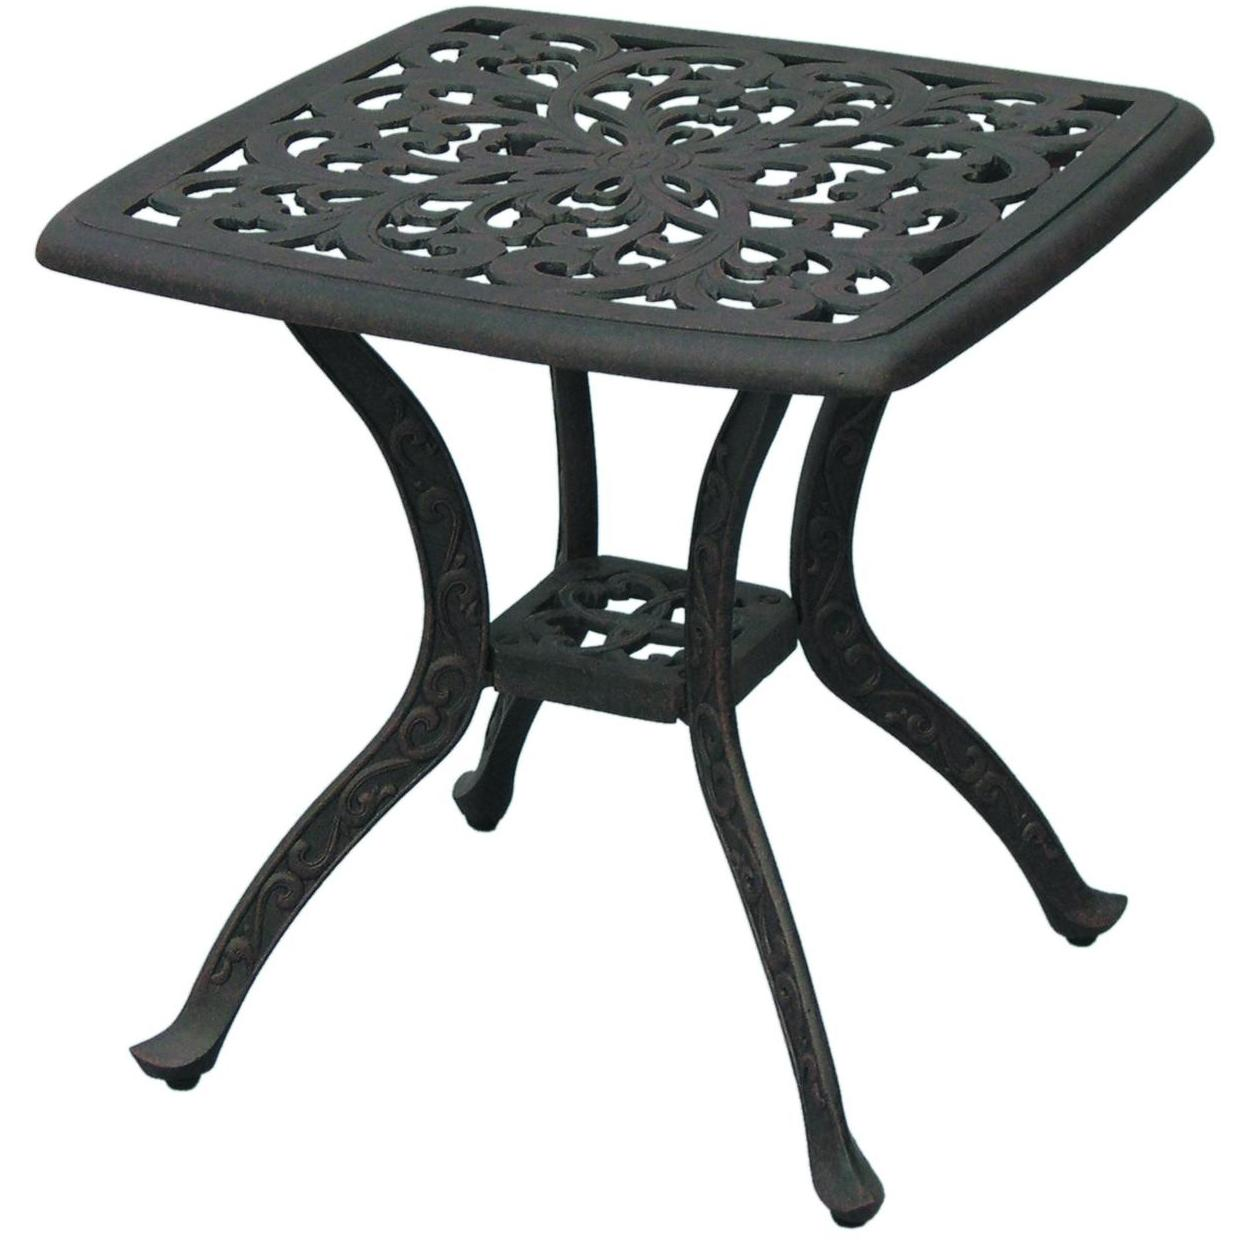 darlee series cast aluminum patio end table square bbq guys antique bronze accent outdoor finish tall grey lamps affordable modern furniture black kitchen chairs lobby very small